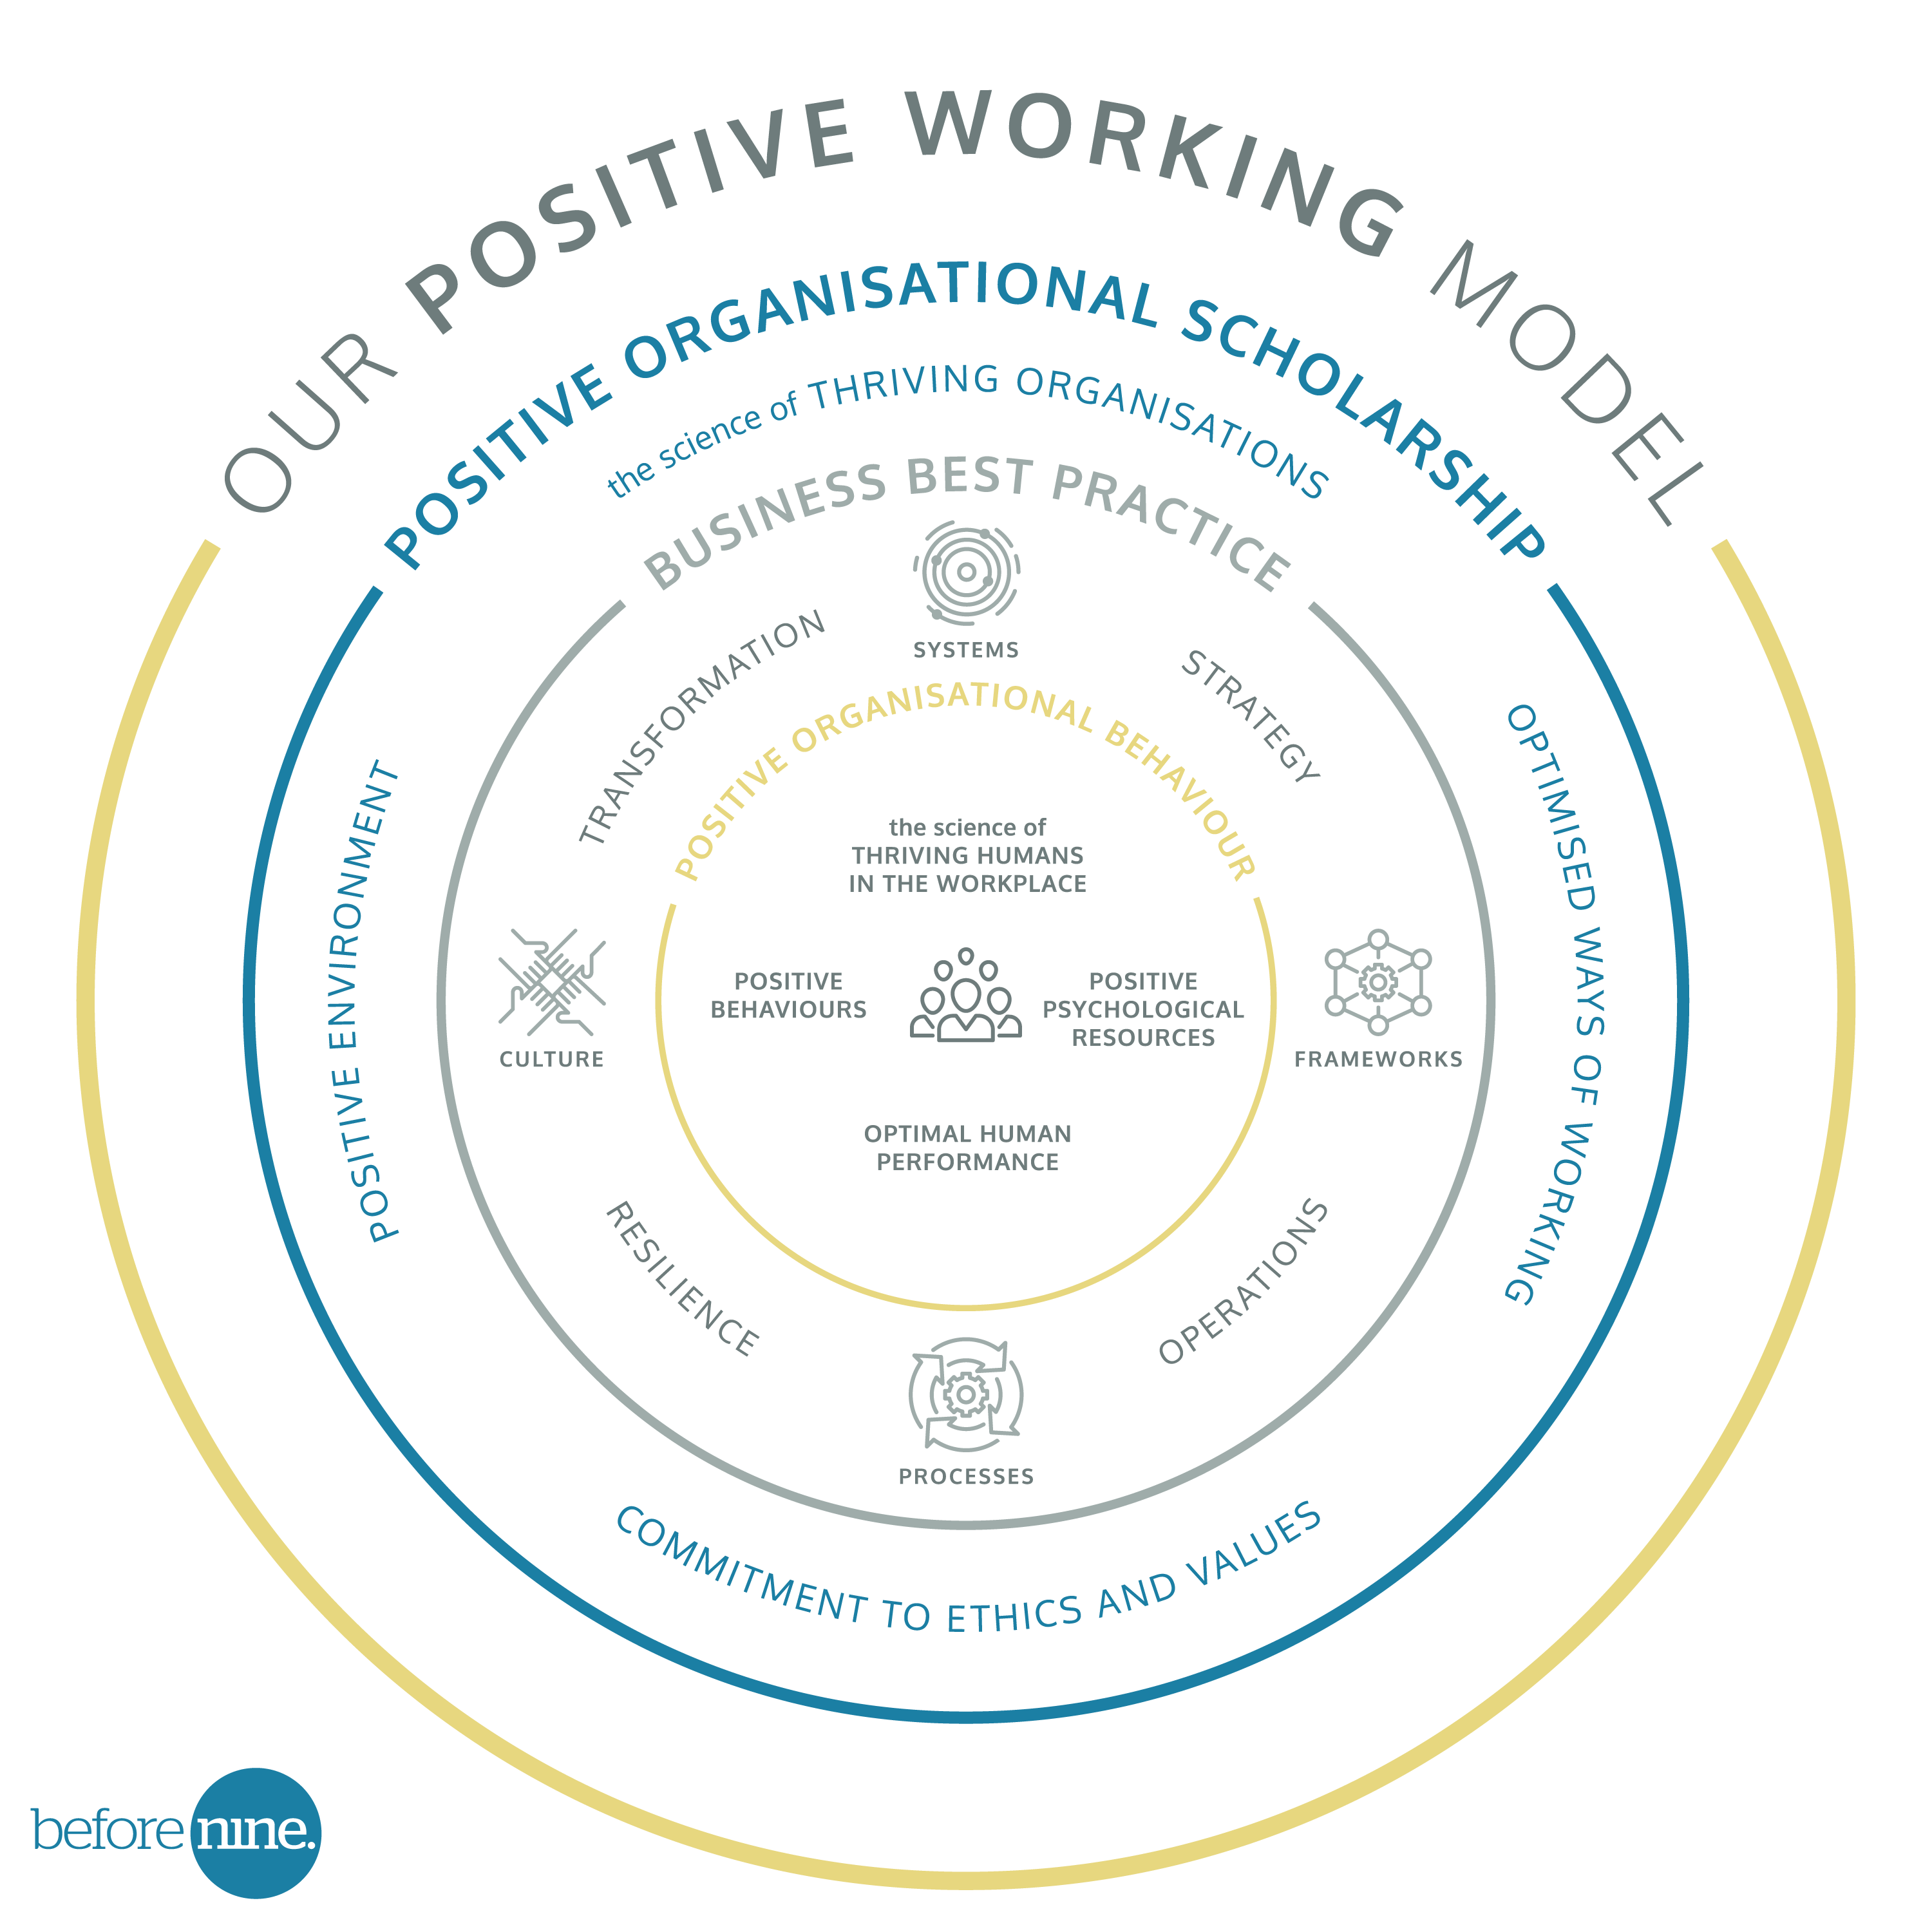 positive working model